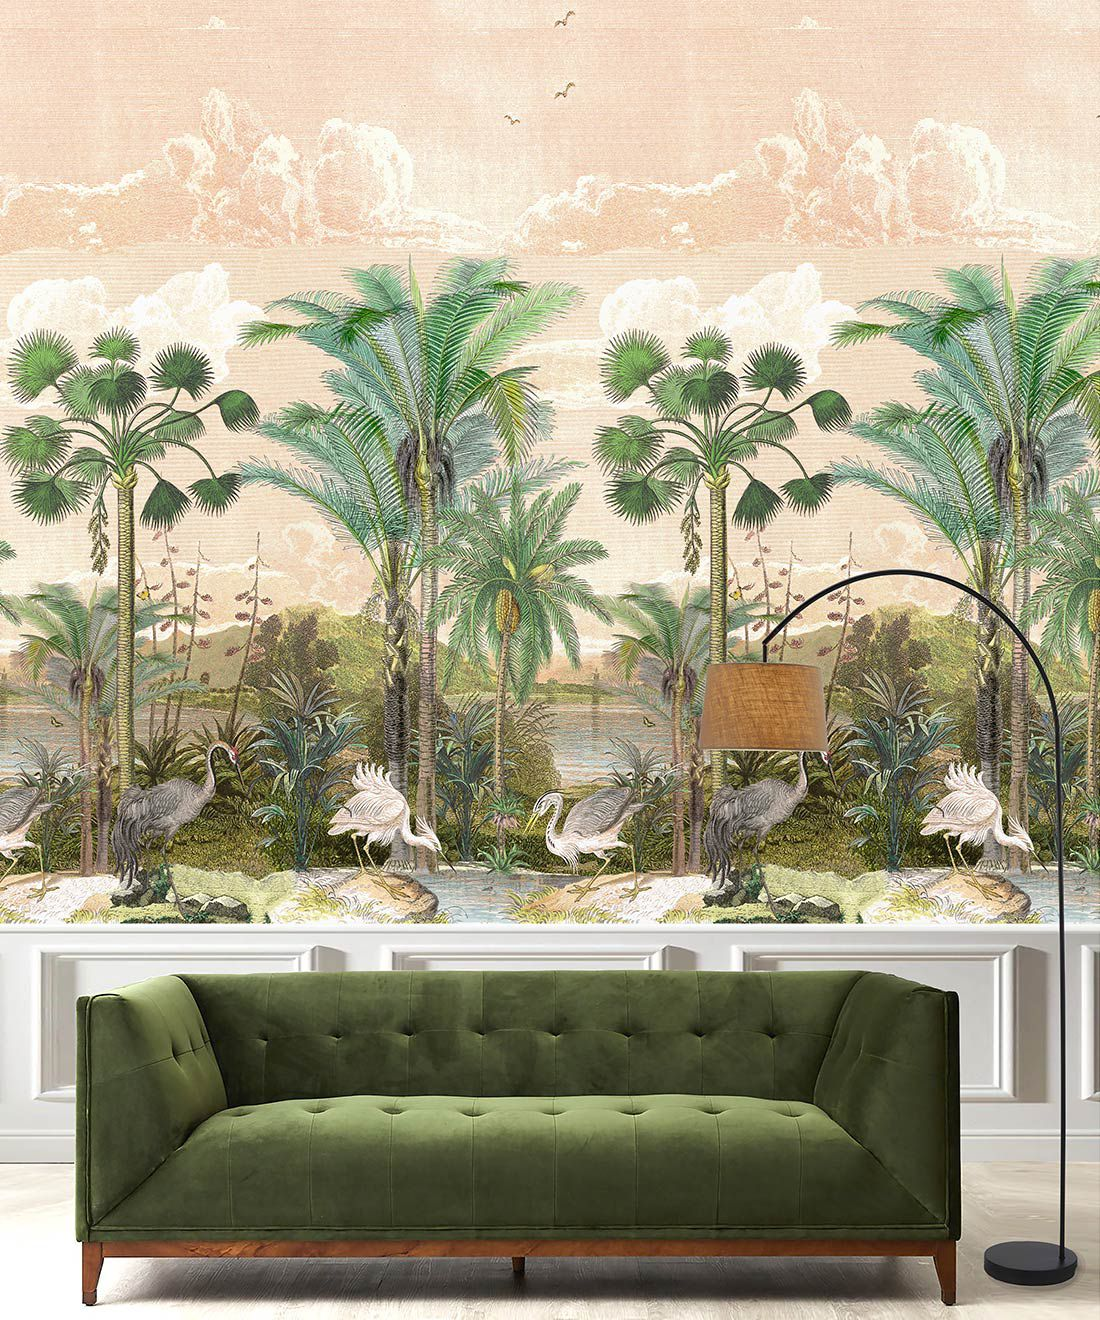 Indian Subcontinent Wallpaper Mural •Bethany Linz • Palm Tree Mural • Pink • Insitu